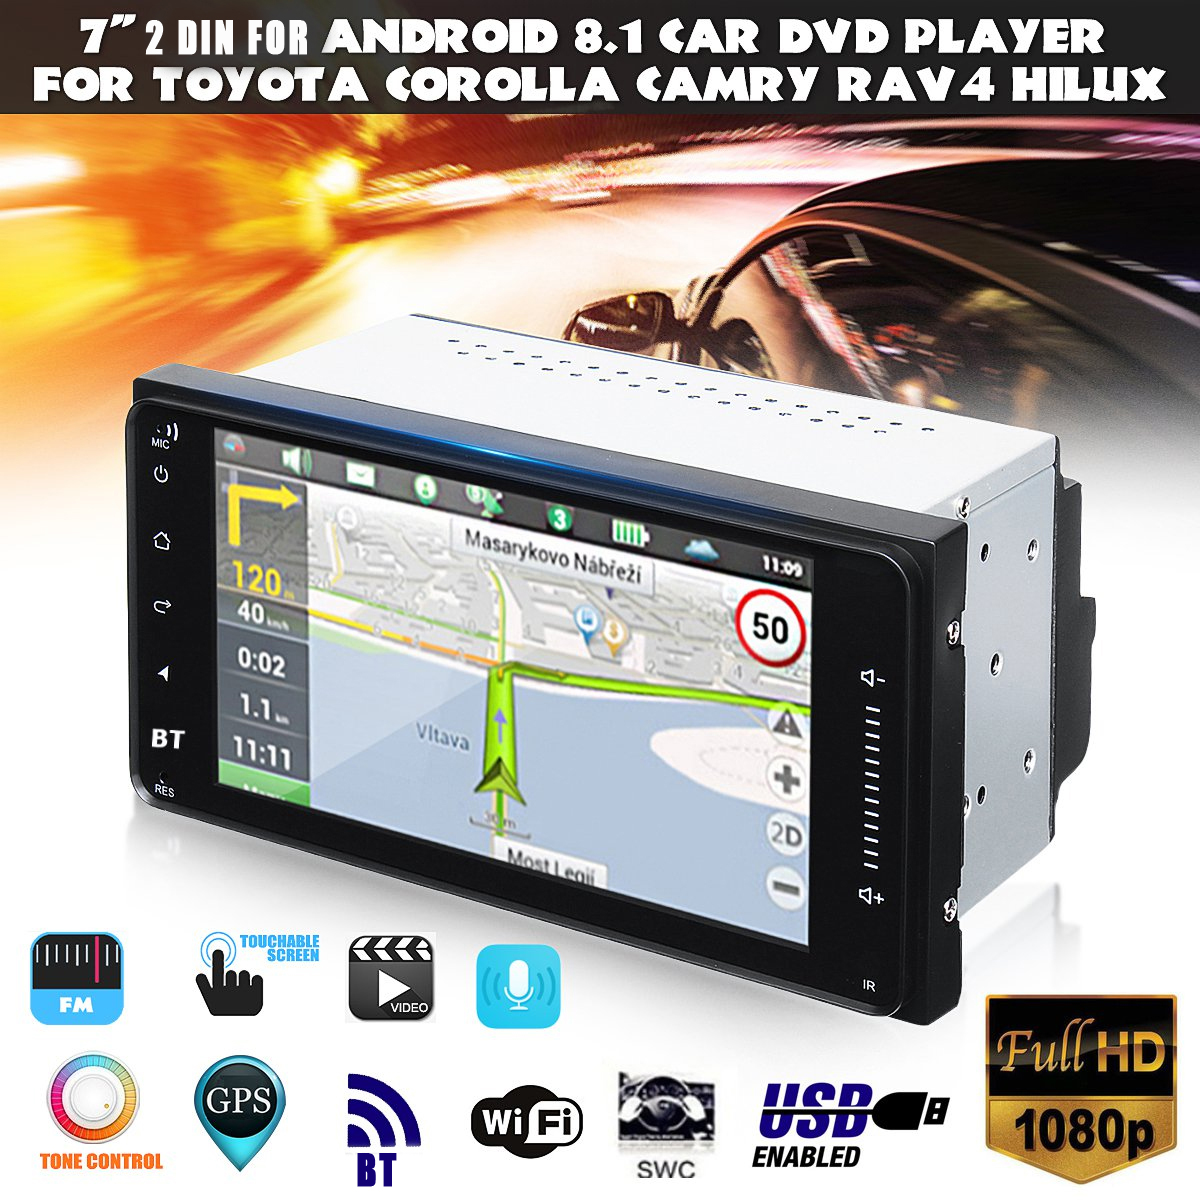 7 Inch 2 Din for Android Car MP5 Player 1+16G WIFI GPS Stereo bluetooth  Radio for Toyota Corolla Hilux RAV4 ETC